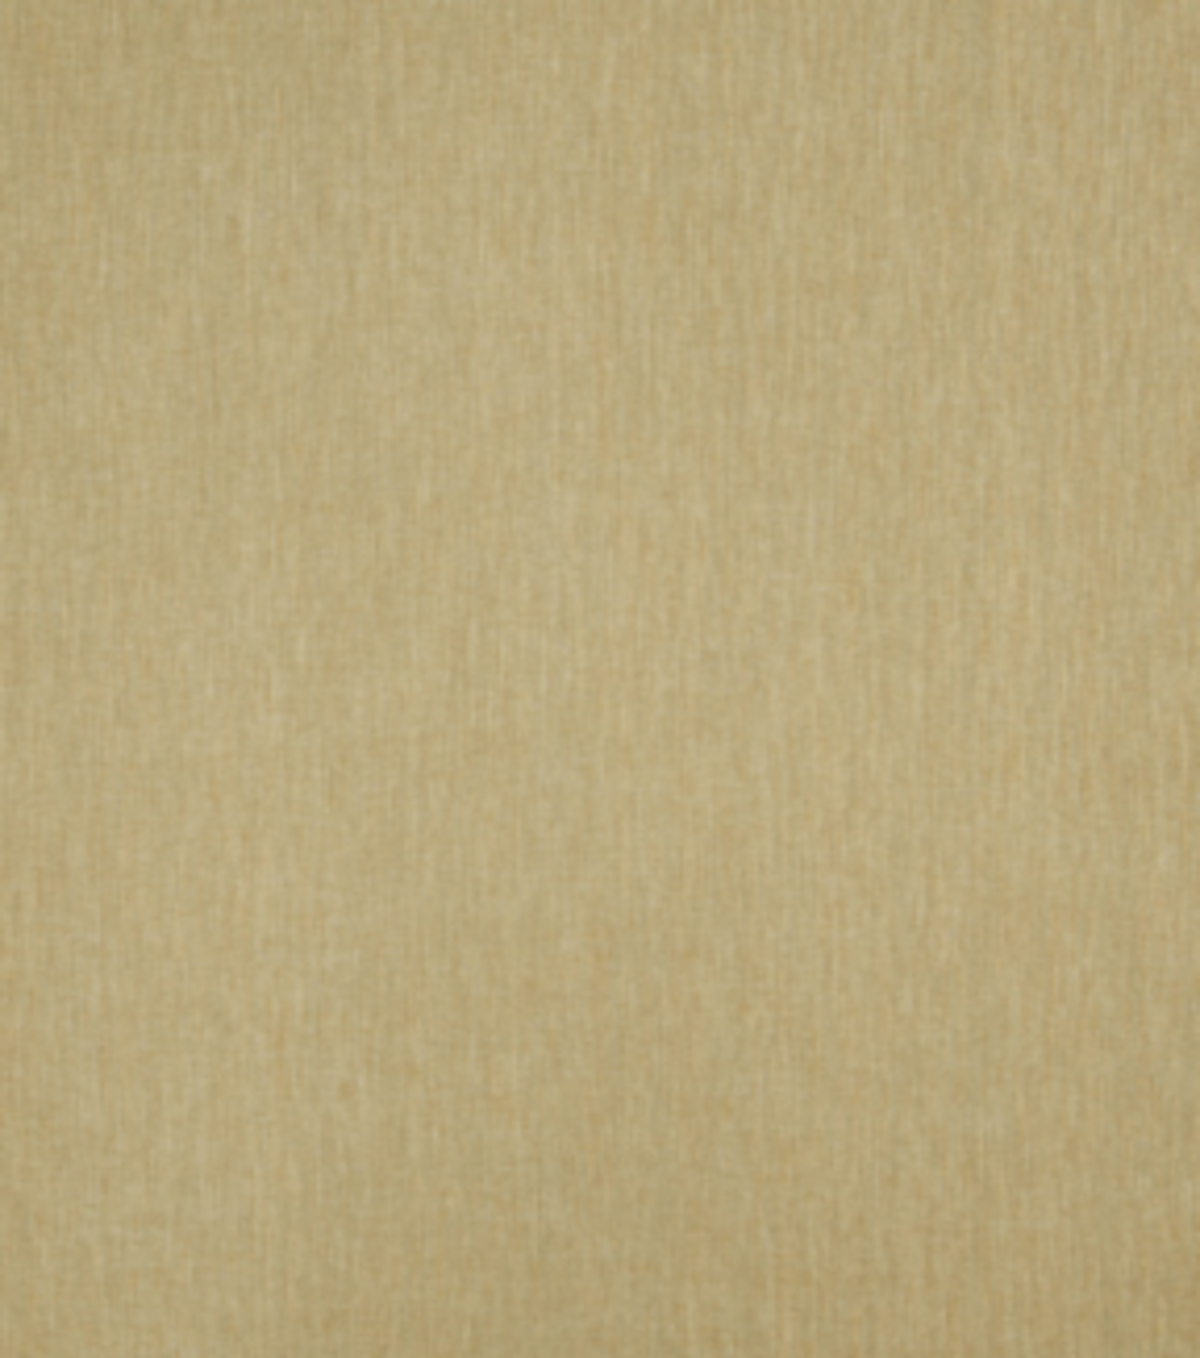 Home Decor 8\u0022x8\u0022 Fabric Swatch-Eaton Square Mara Patina